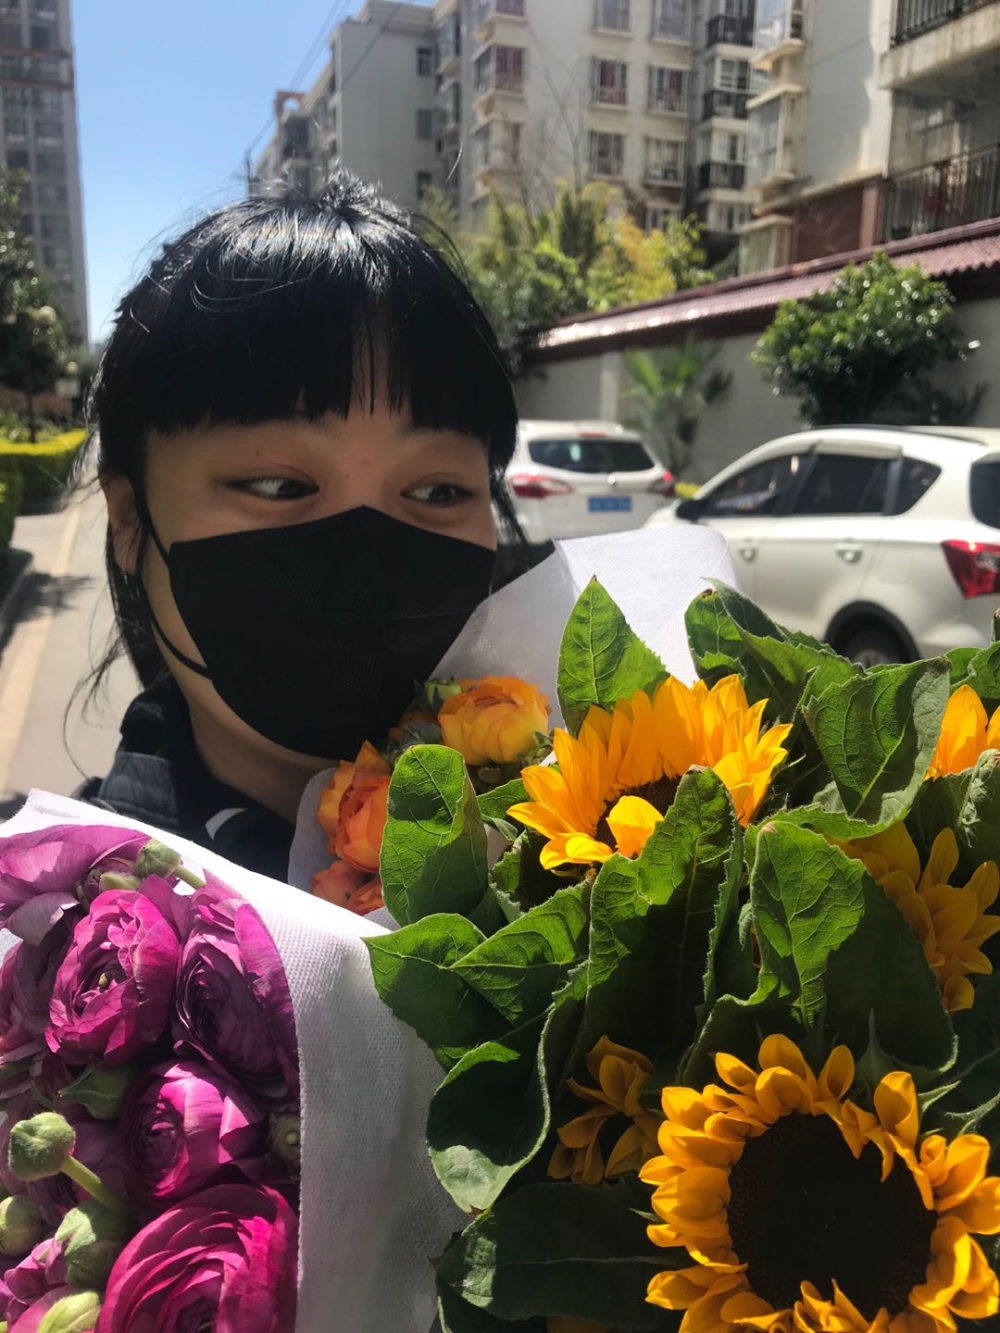 The author on March 1 with three bouquets of flowers from the wet market near her mother's apartment in Kunming, China.  (Courtesy)